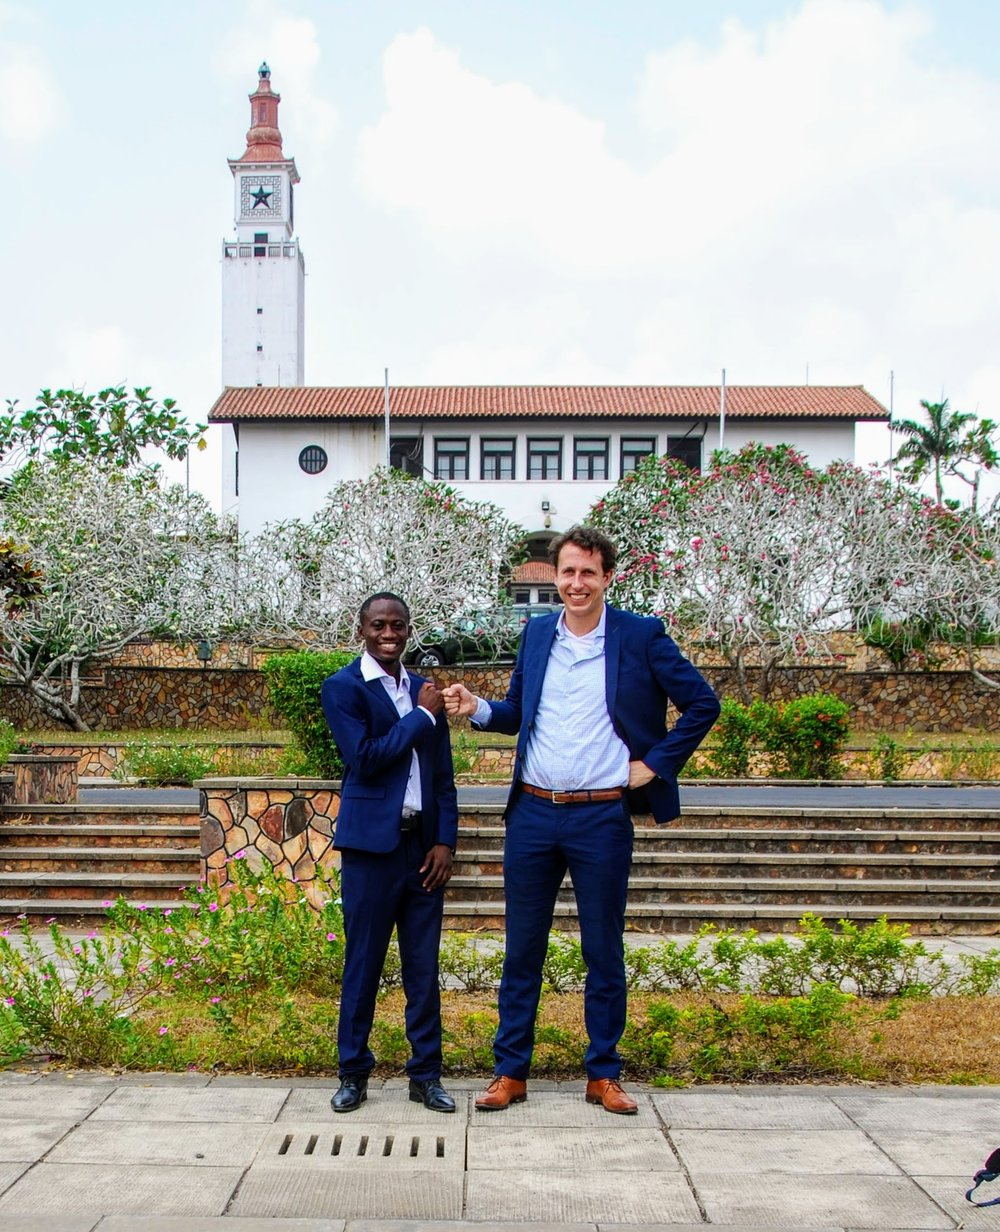 """""""The major resource needed to impact lives within Africa is quality education"""" - -Richard Adarkwah, Brighter Investment Program manager in Ghana"""